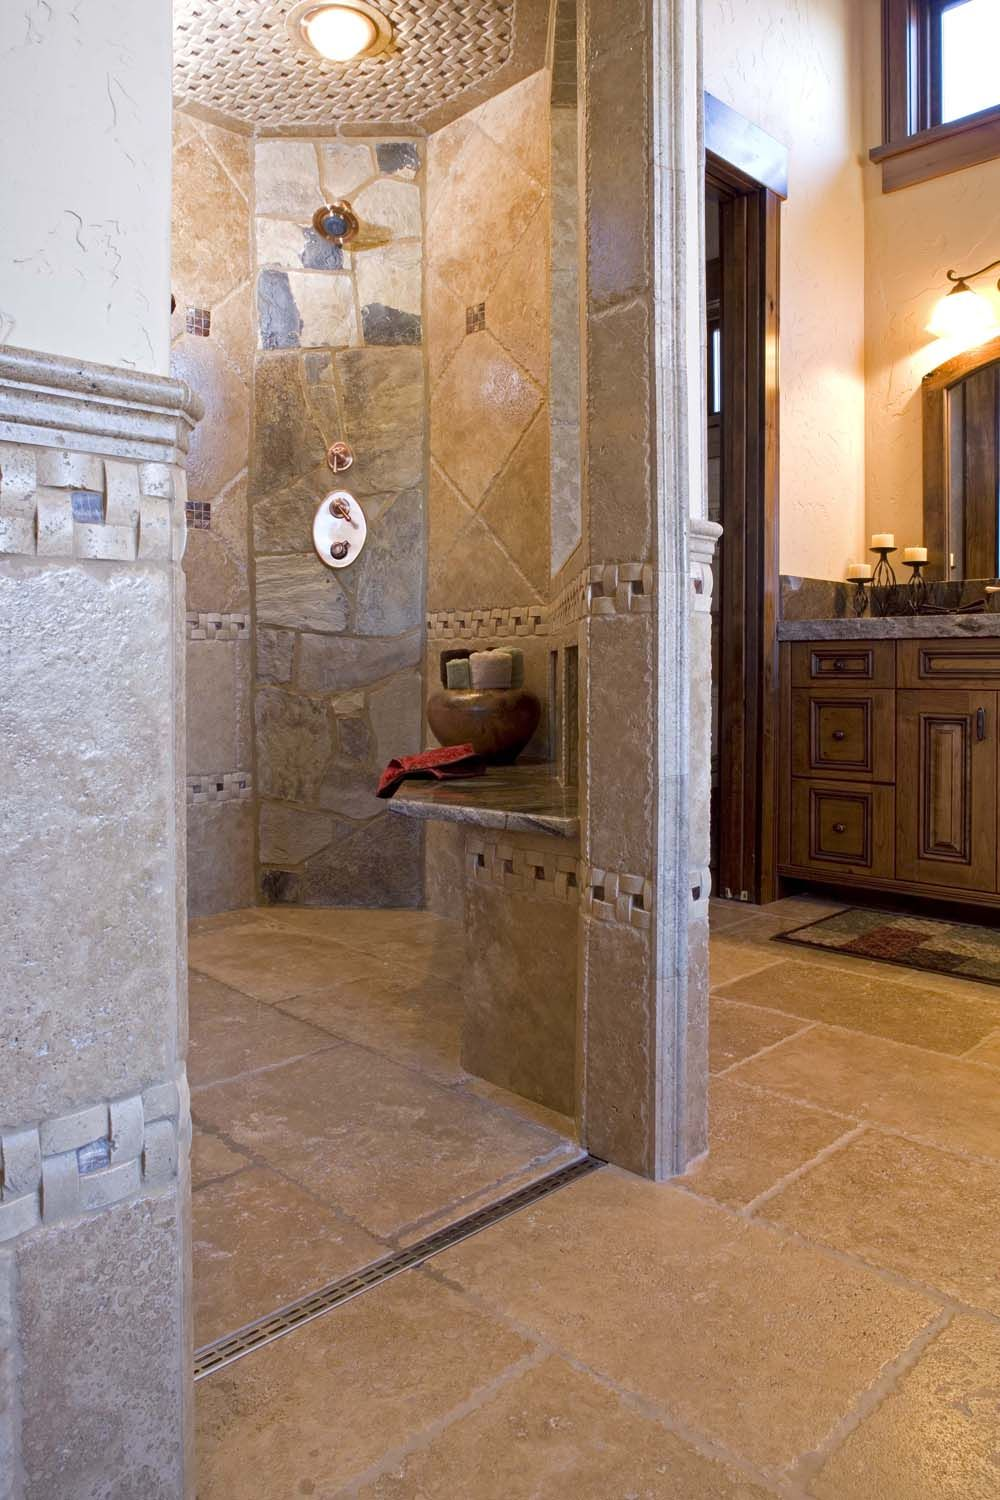 Linear Drains For Tile Showers. Now that is cool ...